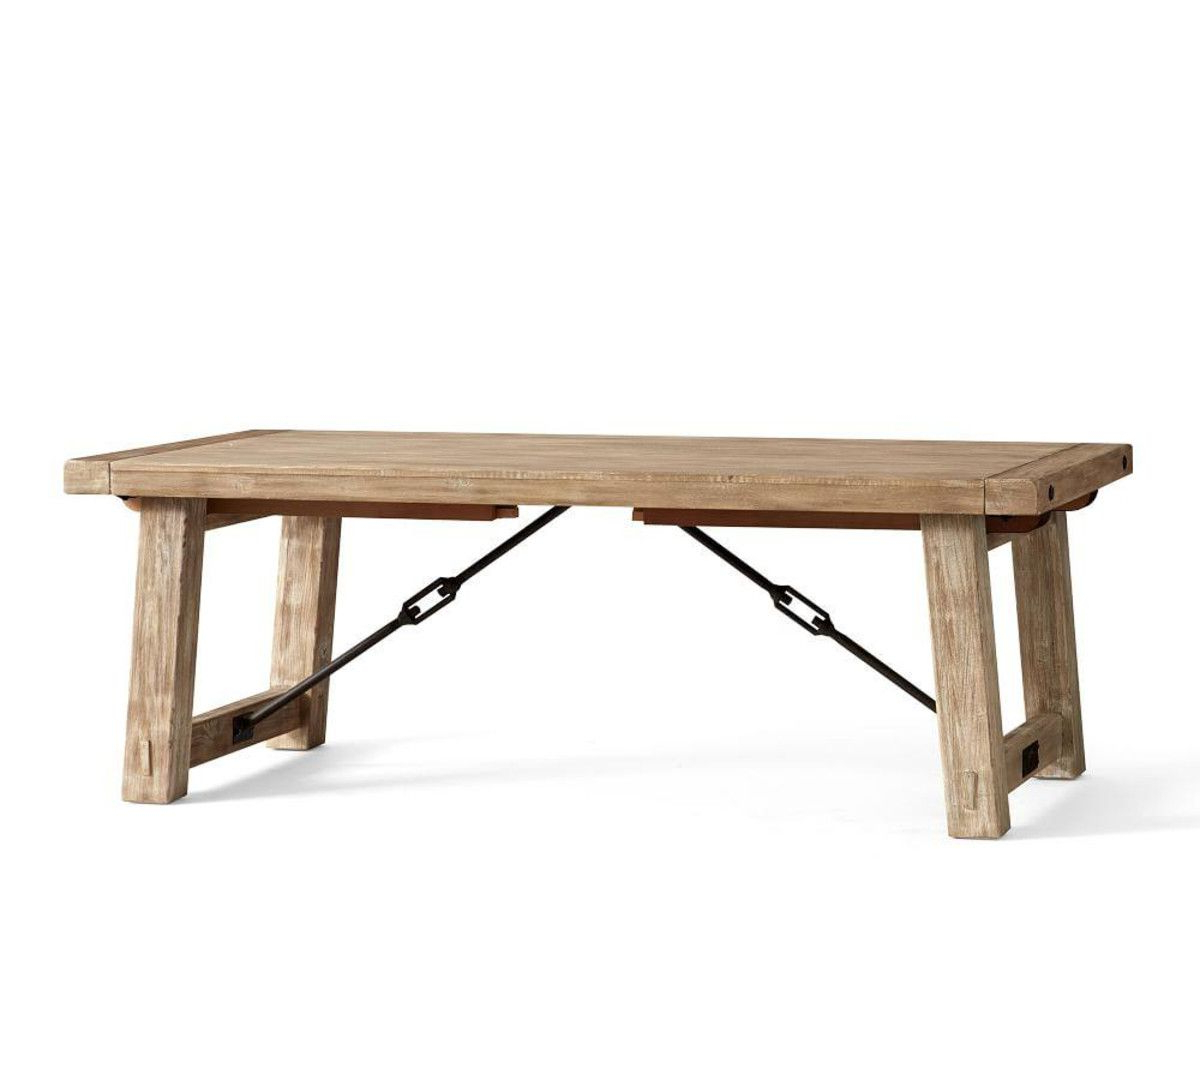 Newest Benchwright Extending Dining Table, Seadrift (View 11 of 25)